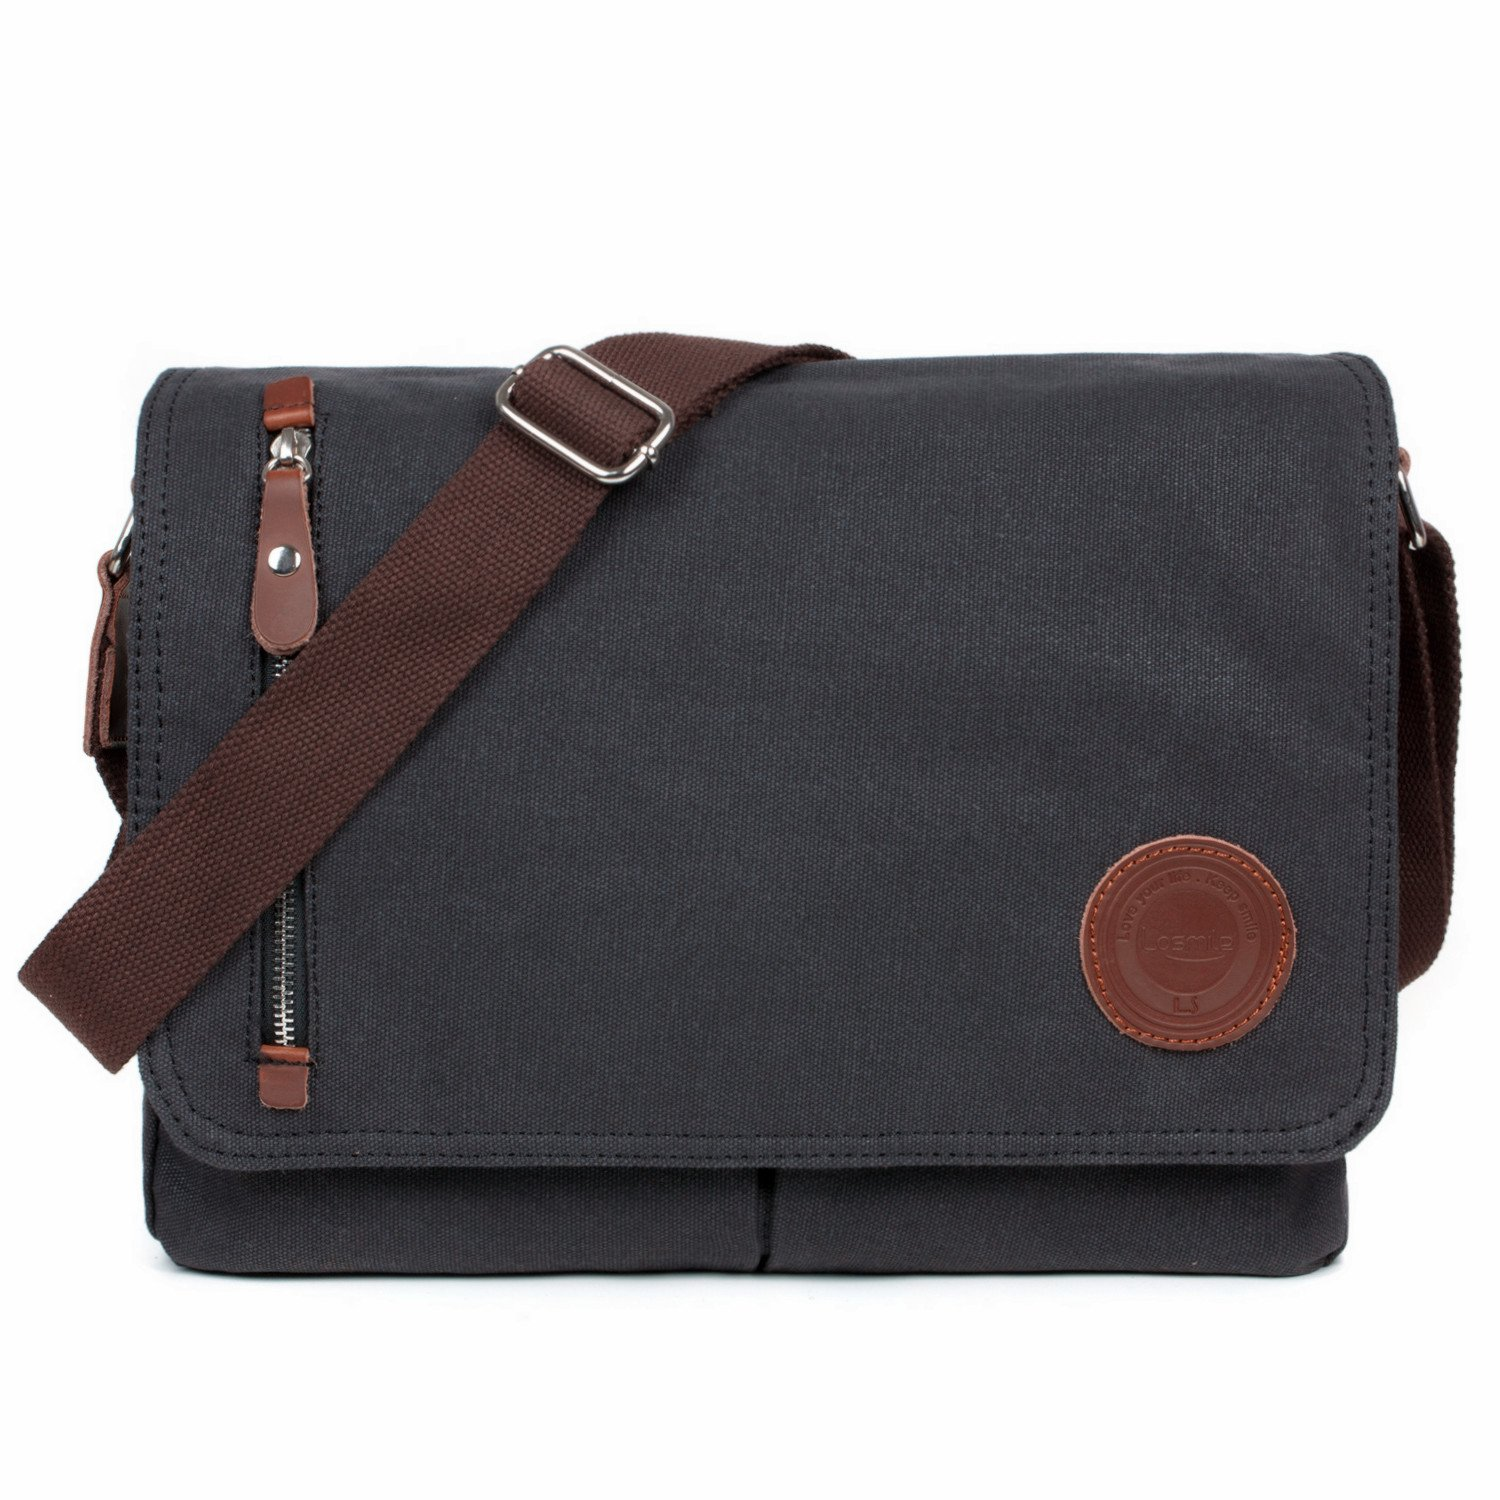 534f59168c51 LOSMILE Mens Canvas Messenger Shoulder Bag.